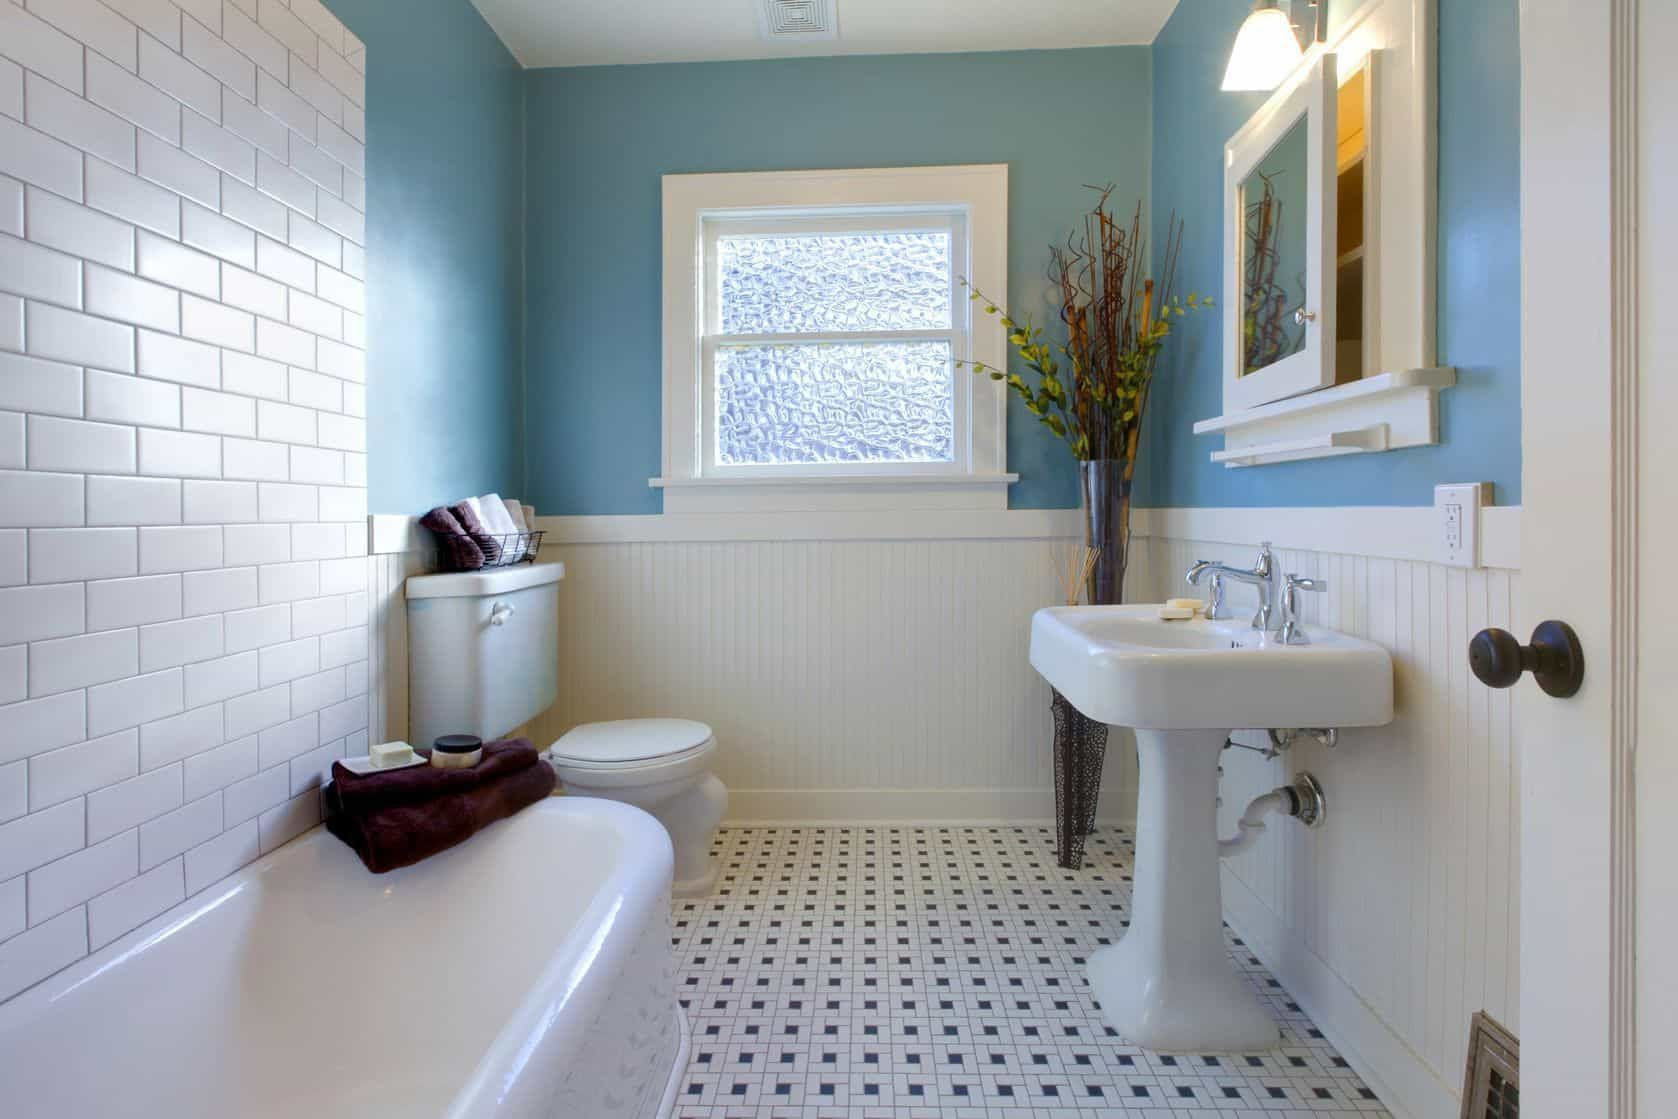 Classic bathroom wainscoting bathroom wainscoting is partialwall